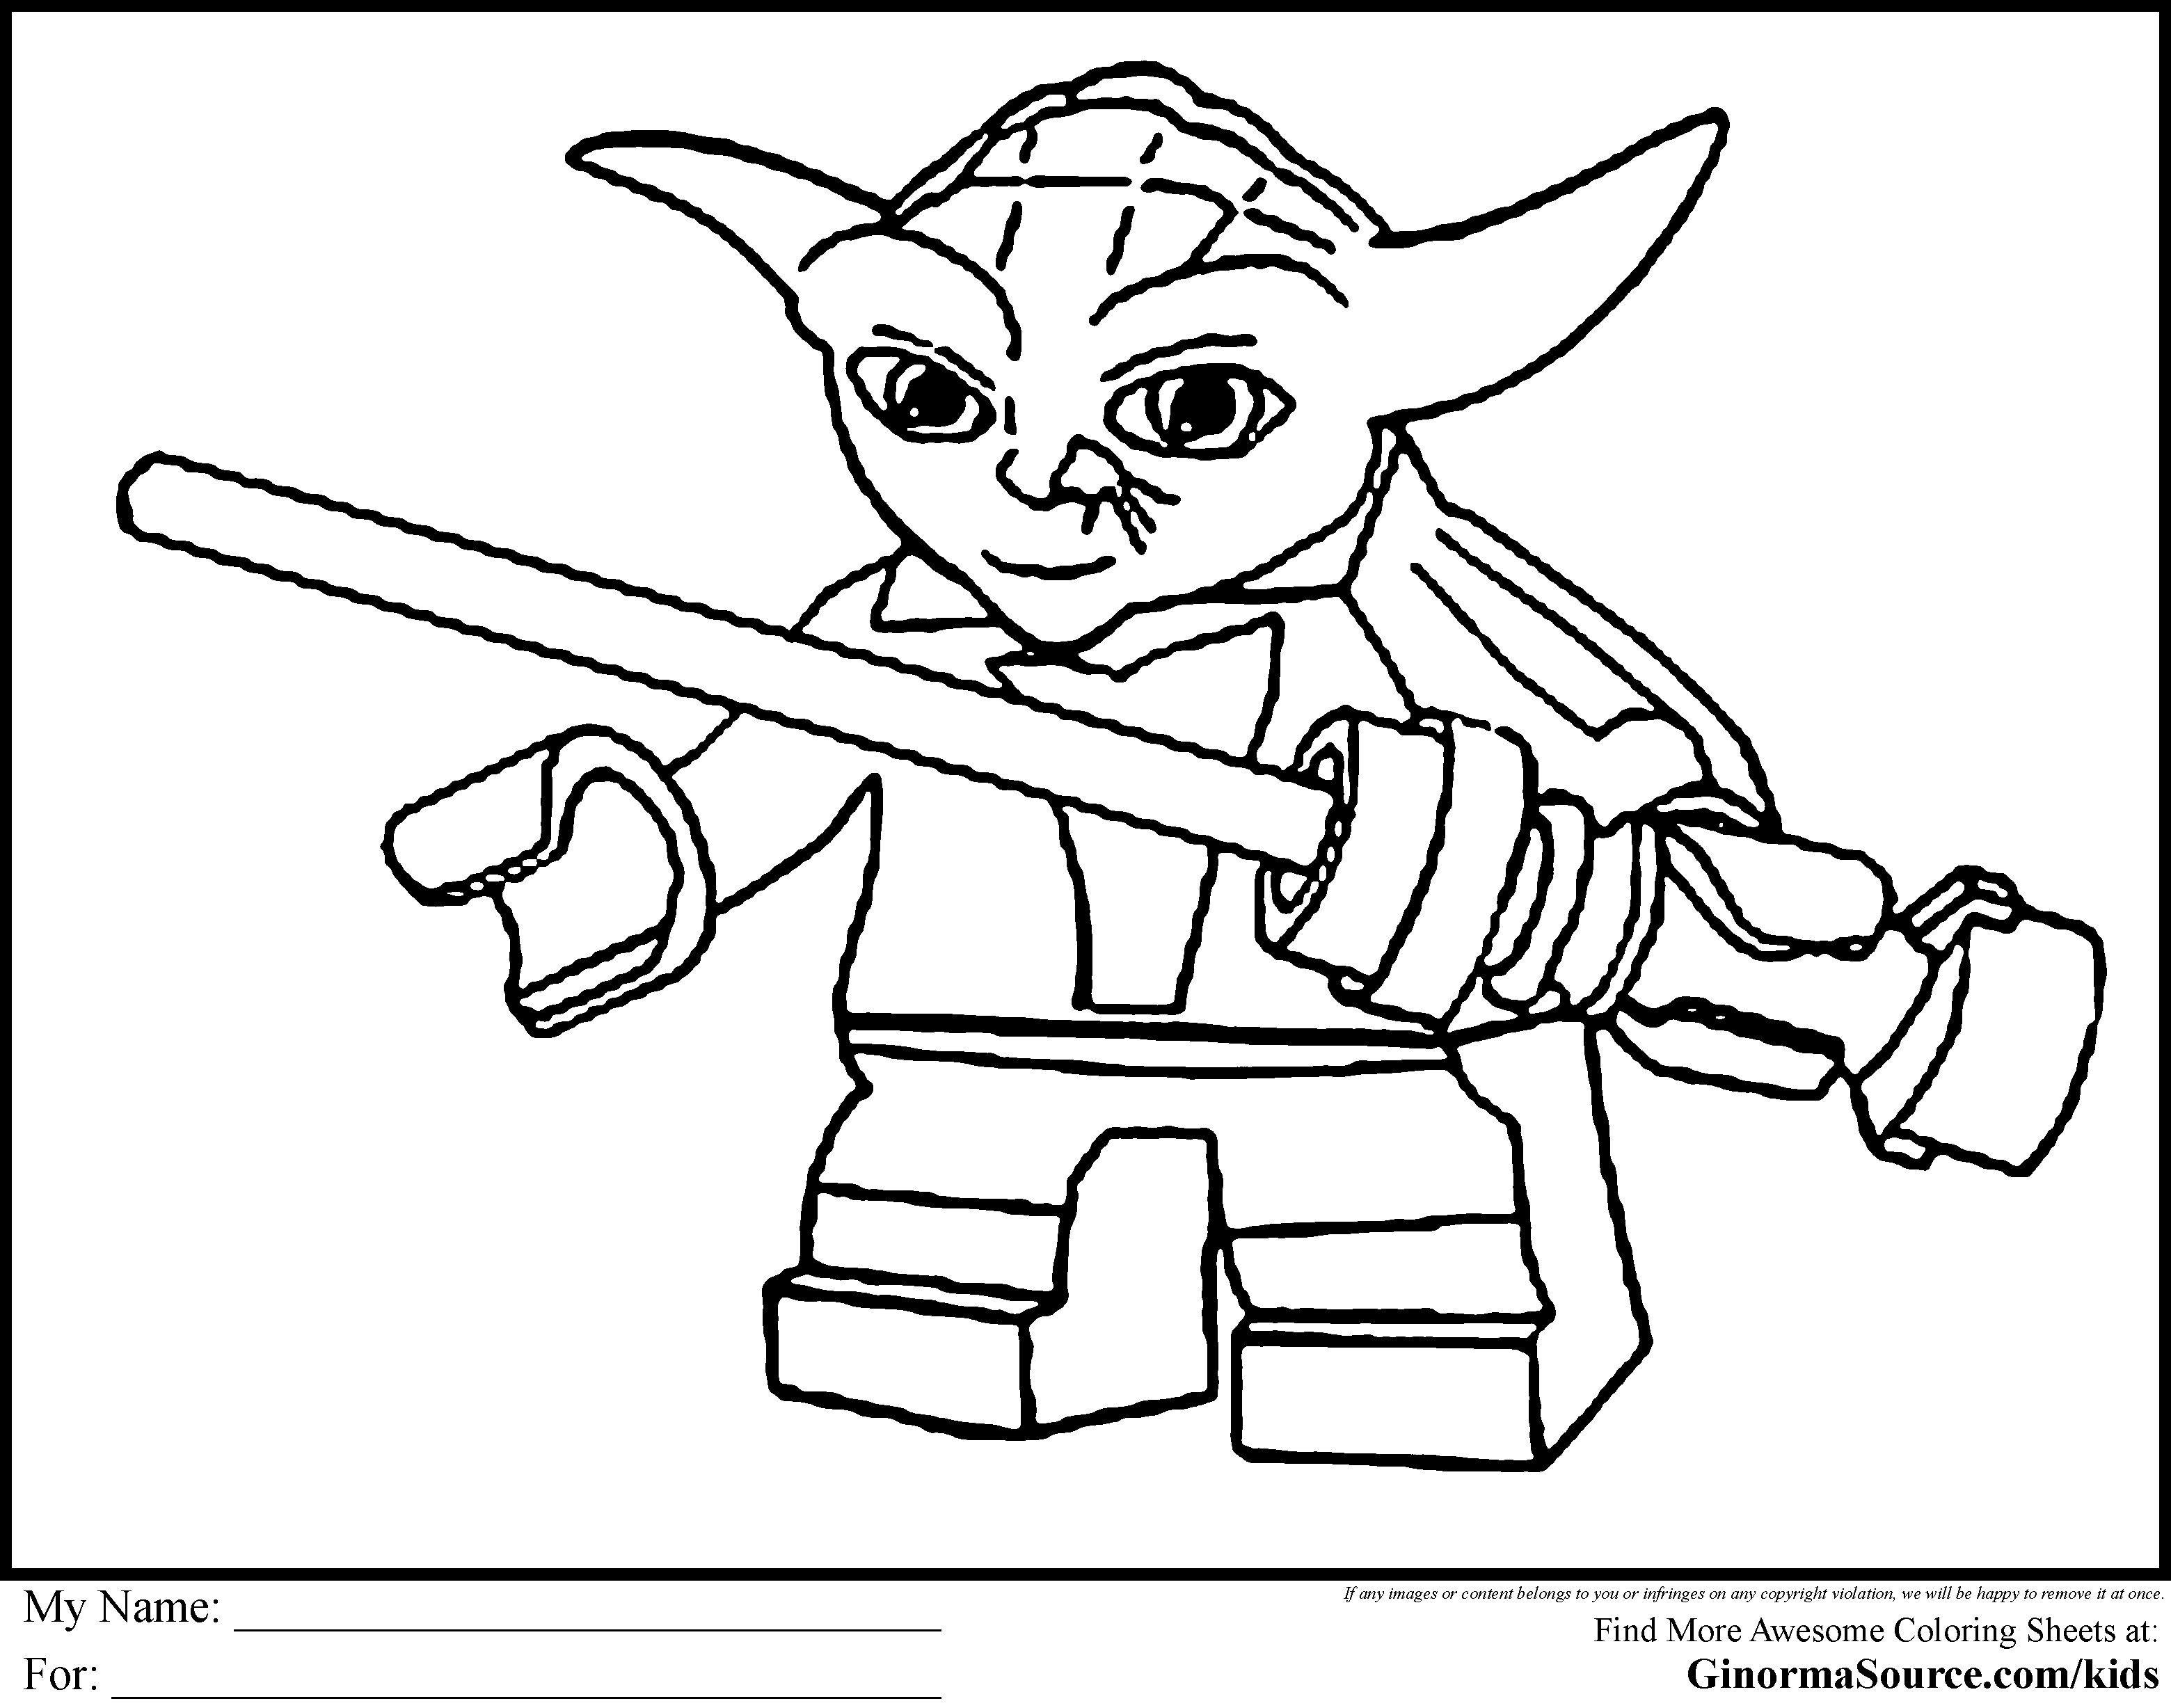 lego star wars coloring pages printable lego star wars coloring pages to download and print for free coloring wars printable star pages lego